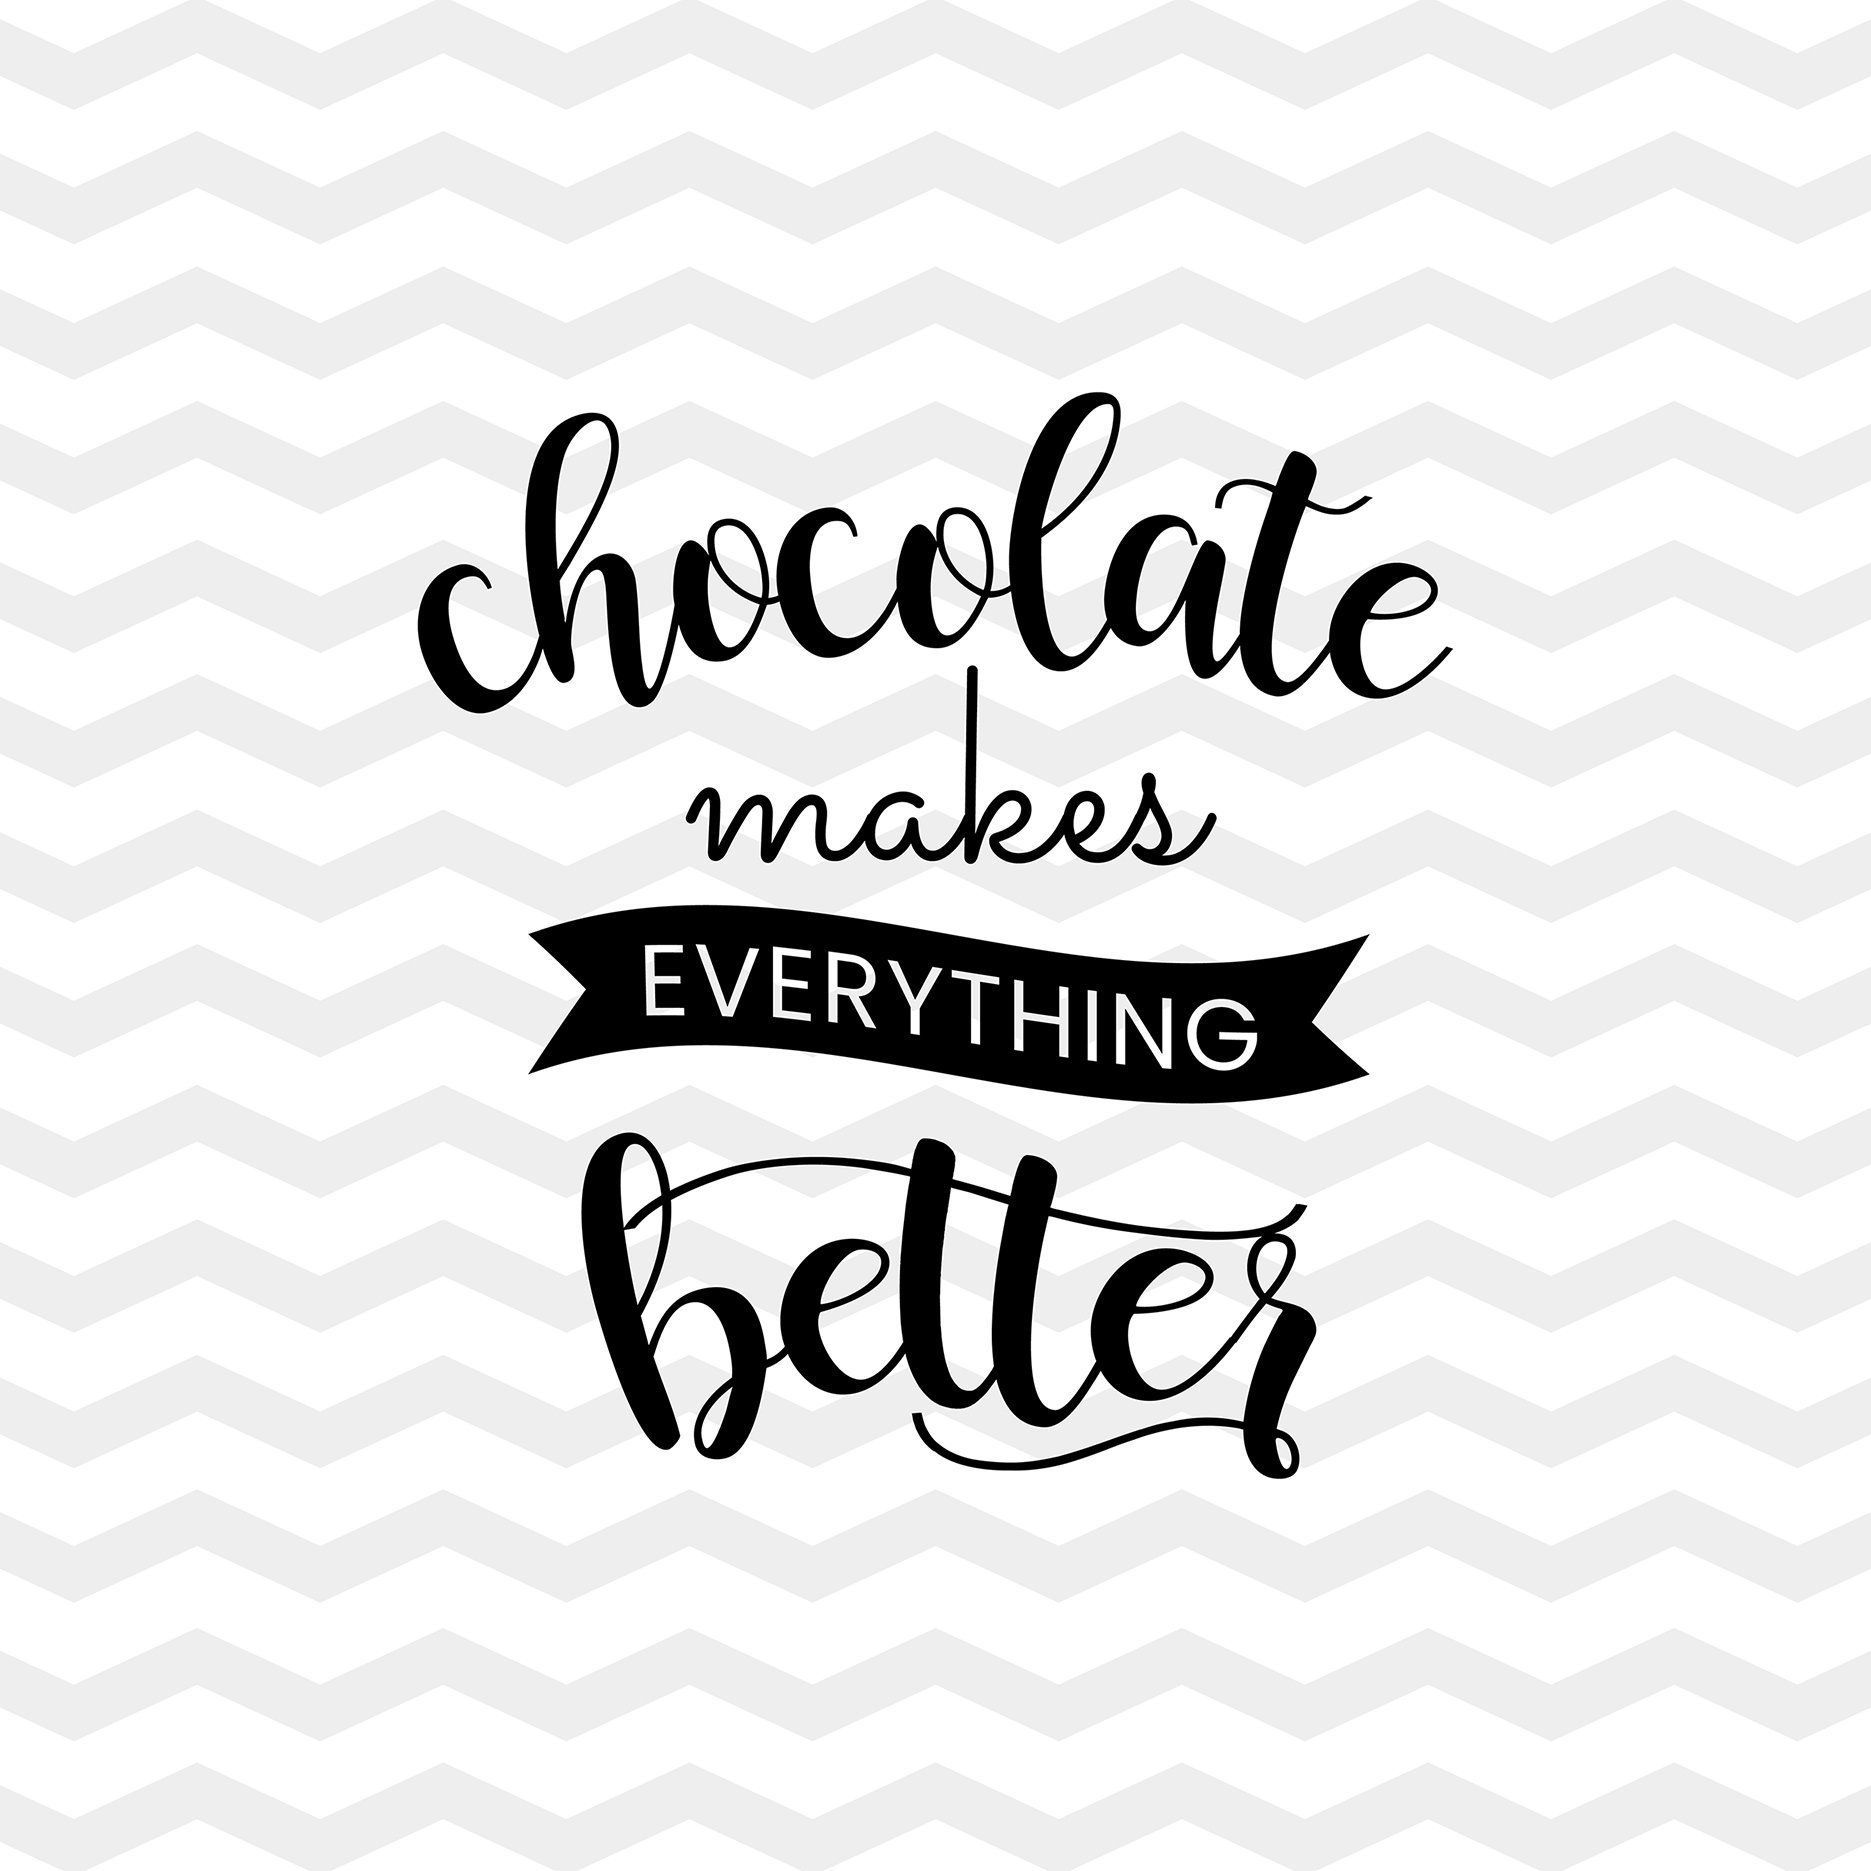 Food Quotes In 2020 Chocolate Quotes Chocolate Lovers Quotes How To Make Chocolate